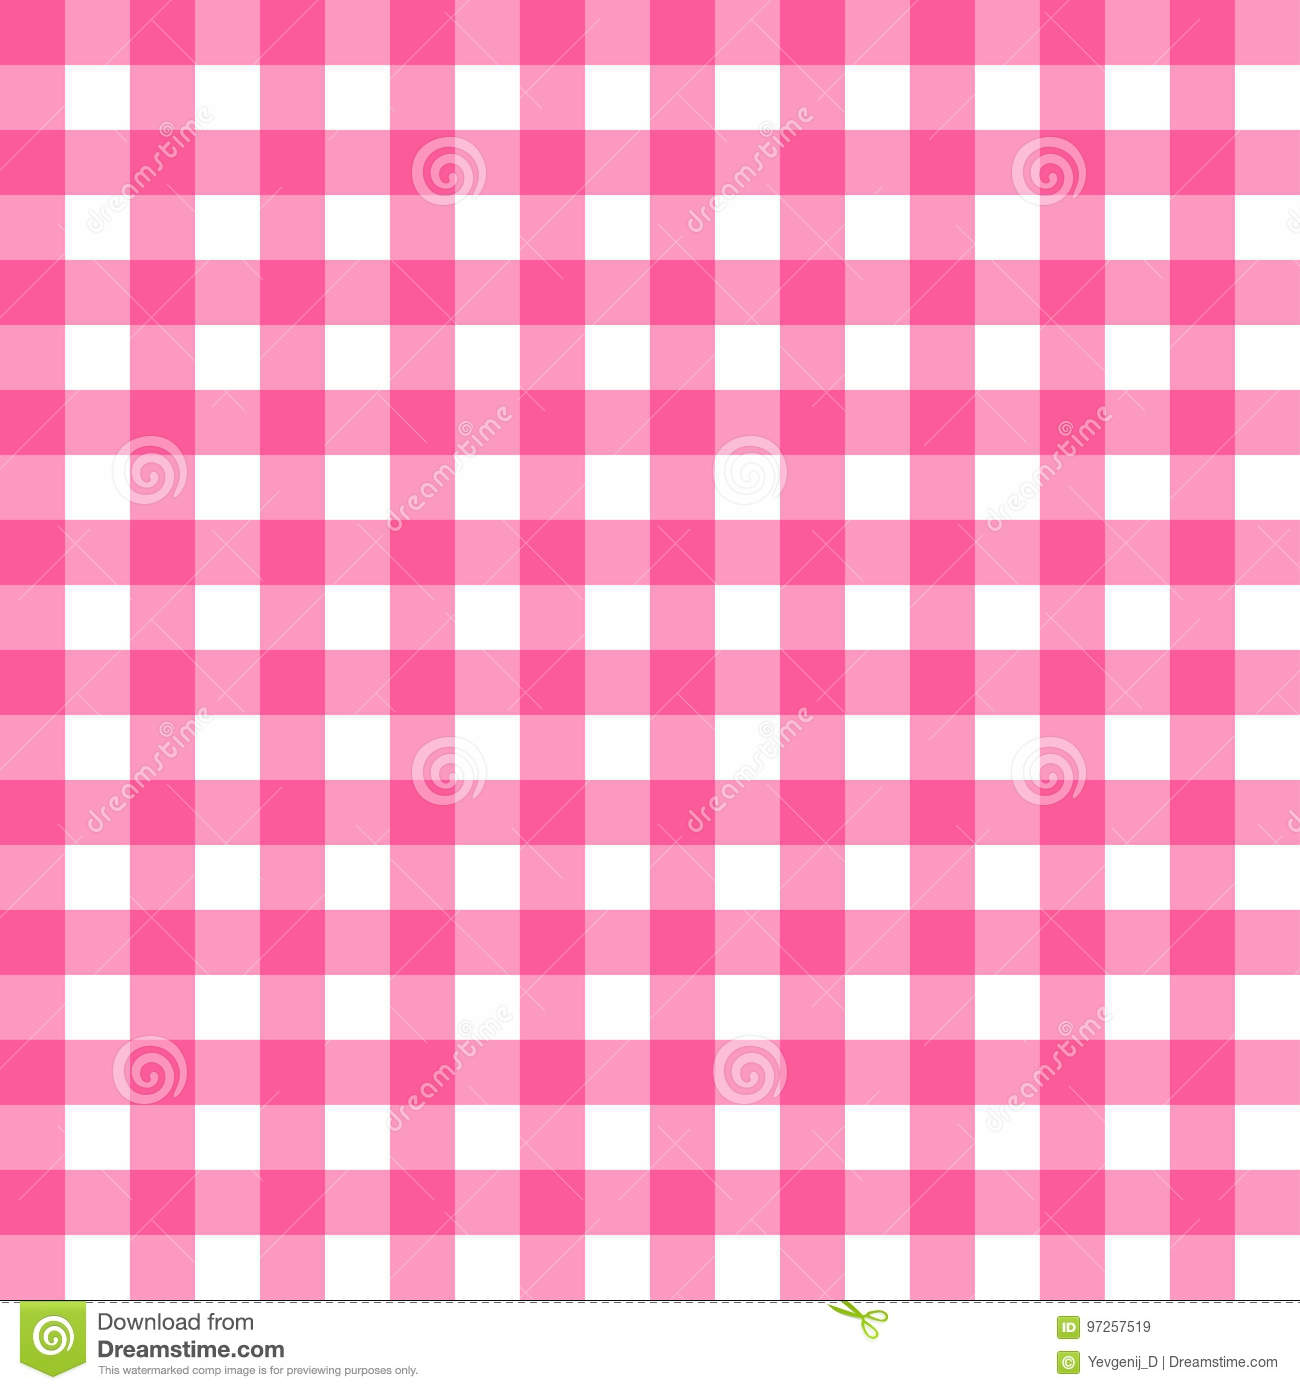 Picnic Table Cloth Seamless Pattern Pink Picnic Plaid Texture Stock Vector Illustration Of